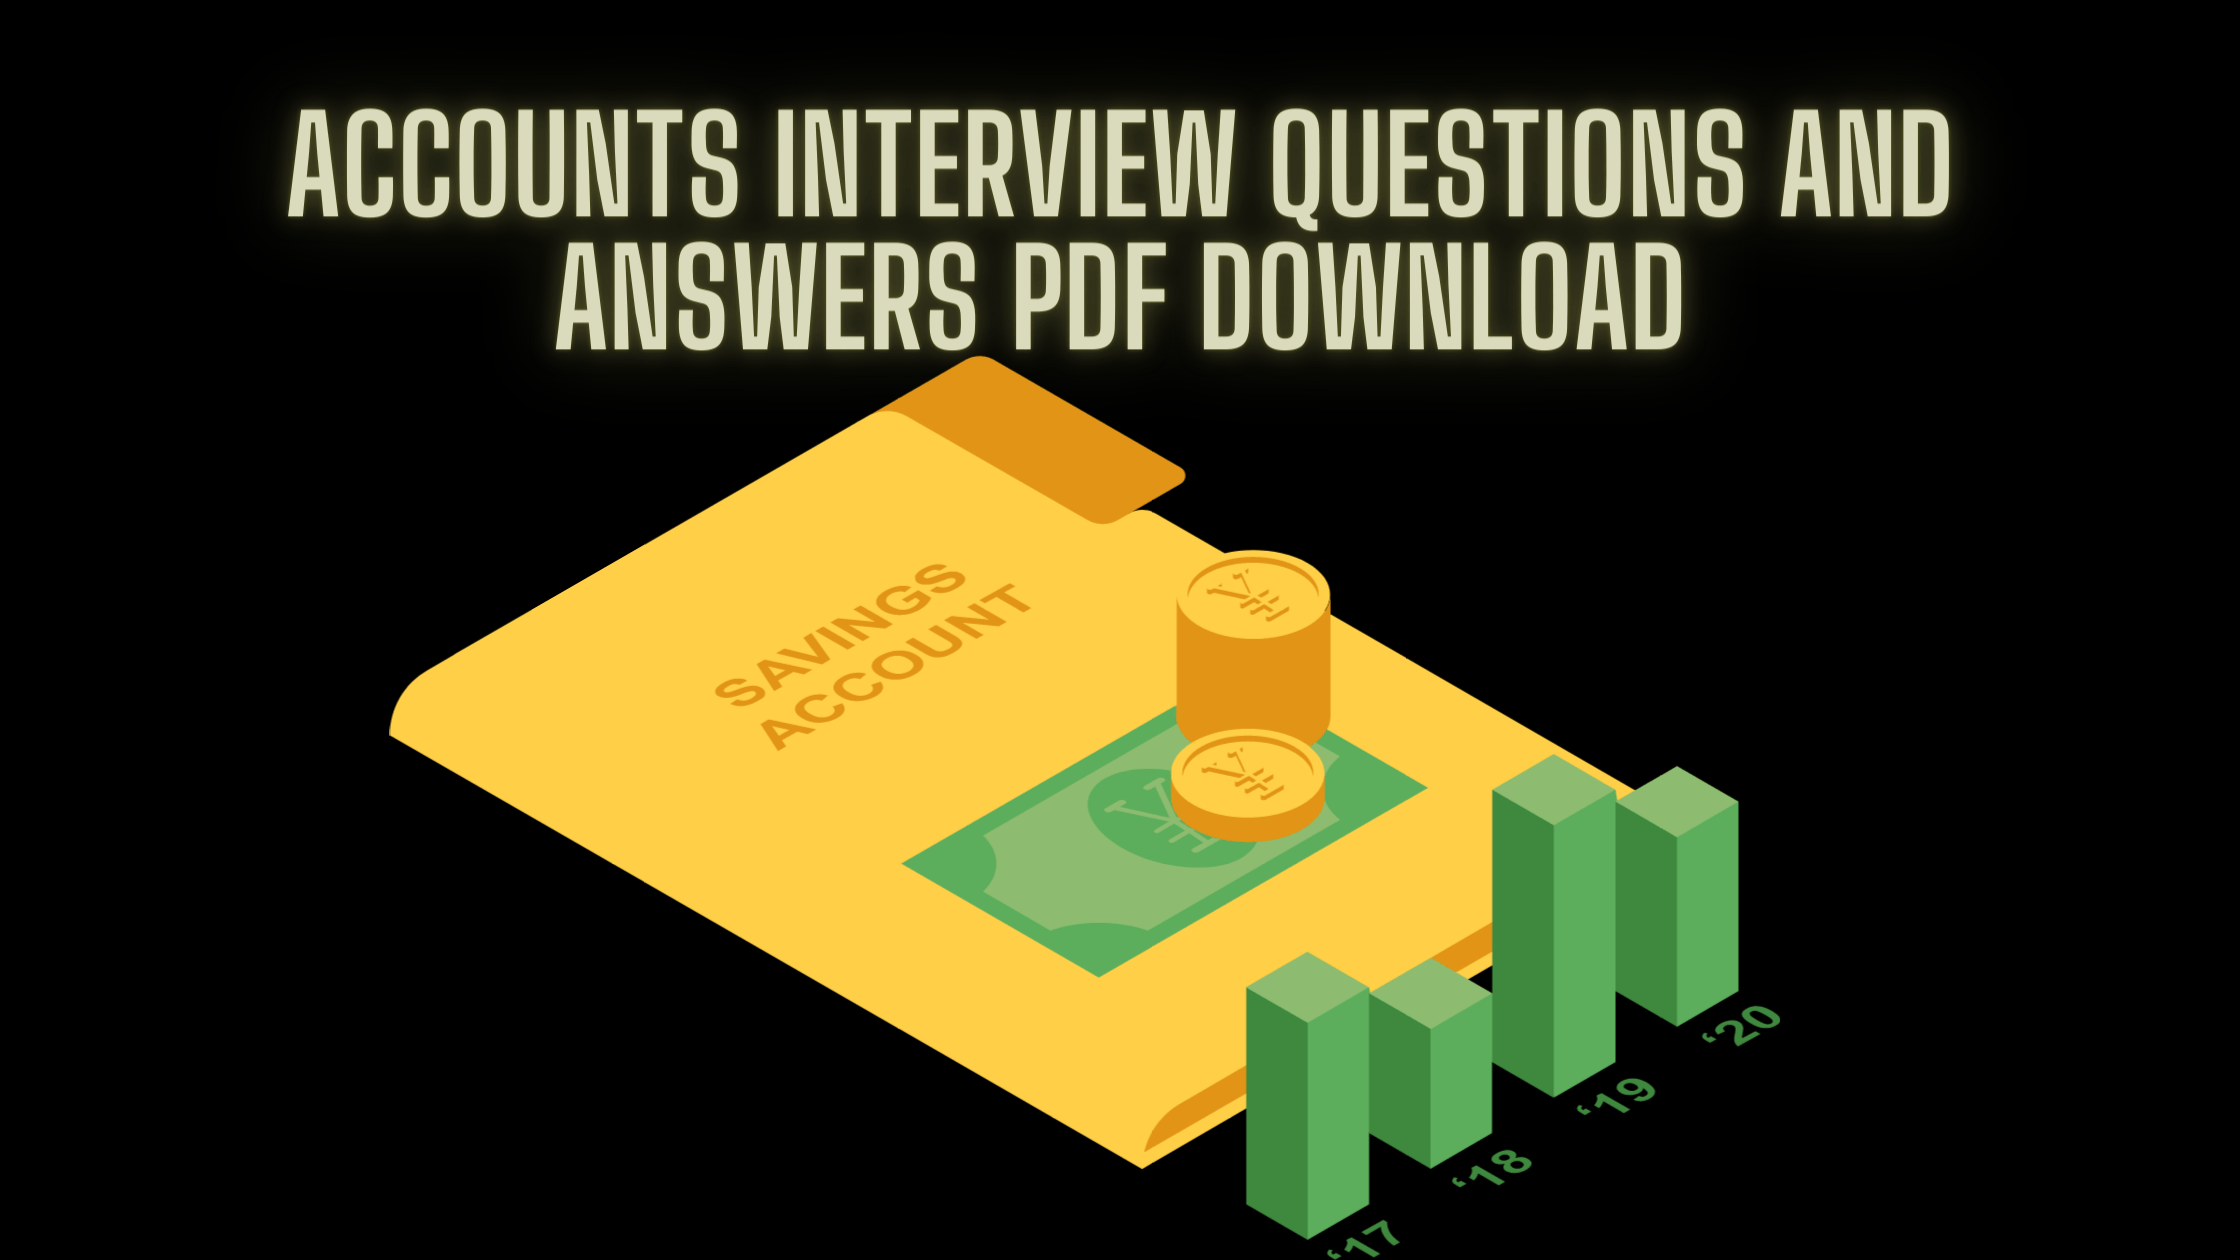 Accounts Interview Questions and Answers PDF Download